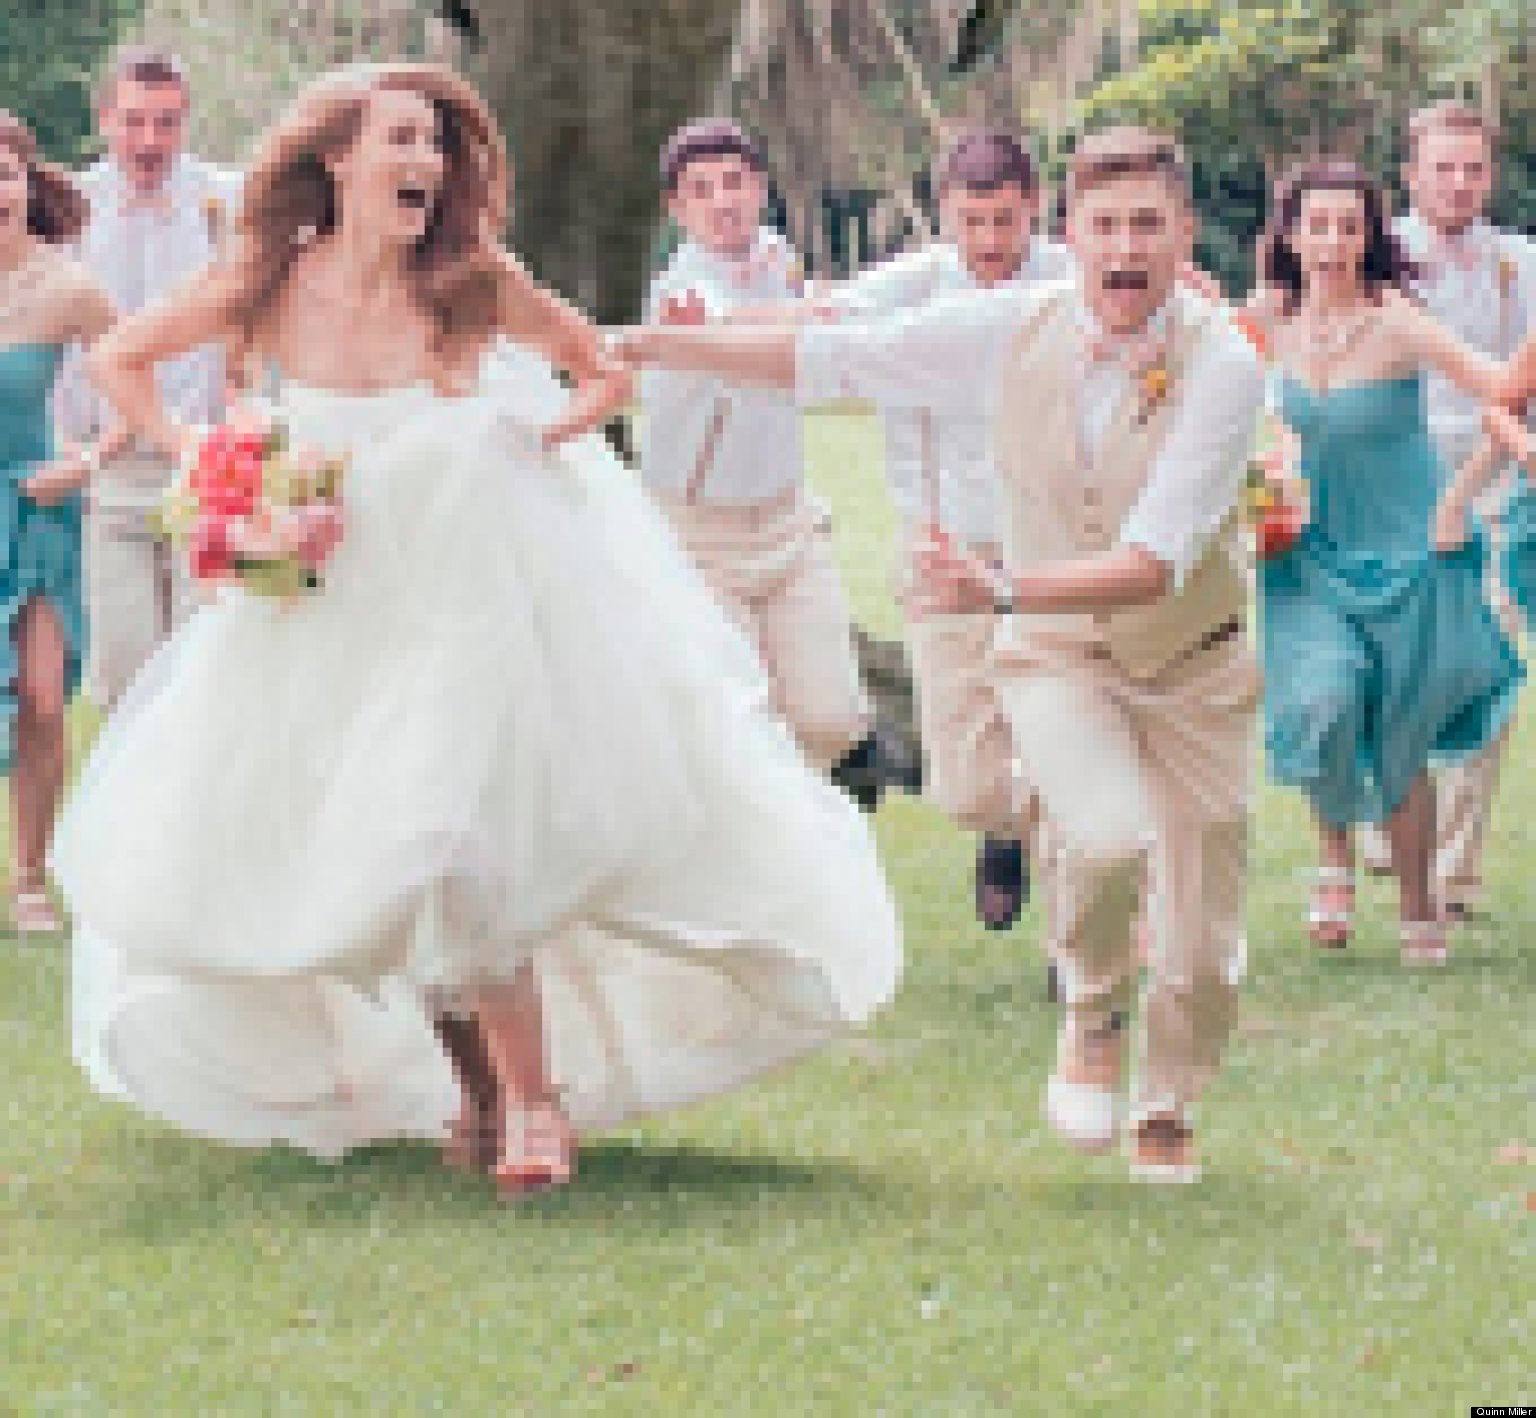 Bridal Photo Gallery: Dinosaur Wedding Photo: T-Rex Chases Bridal Party In Viral